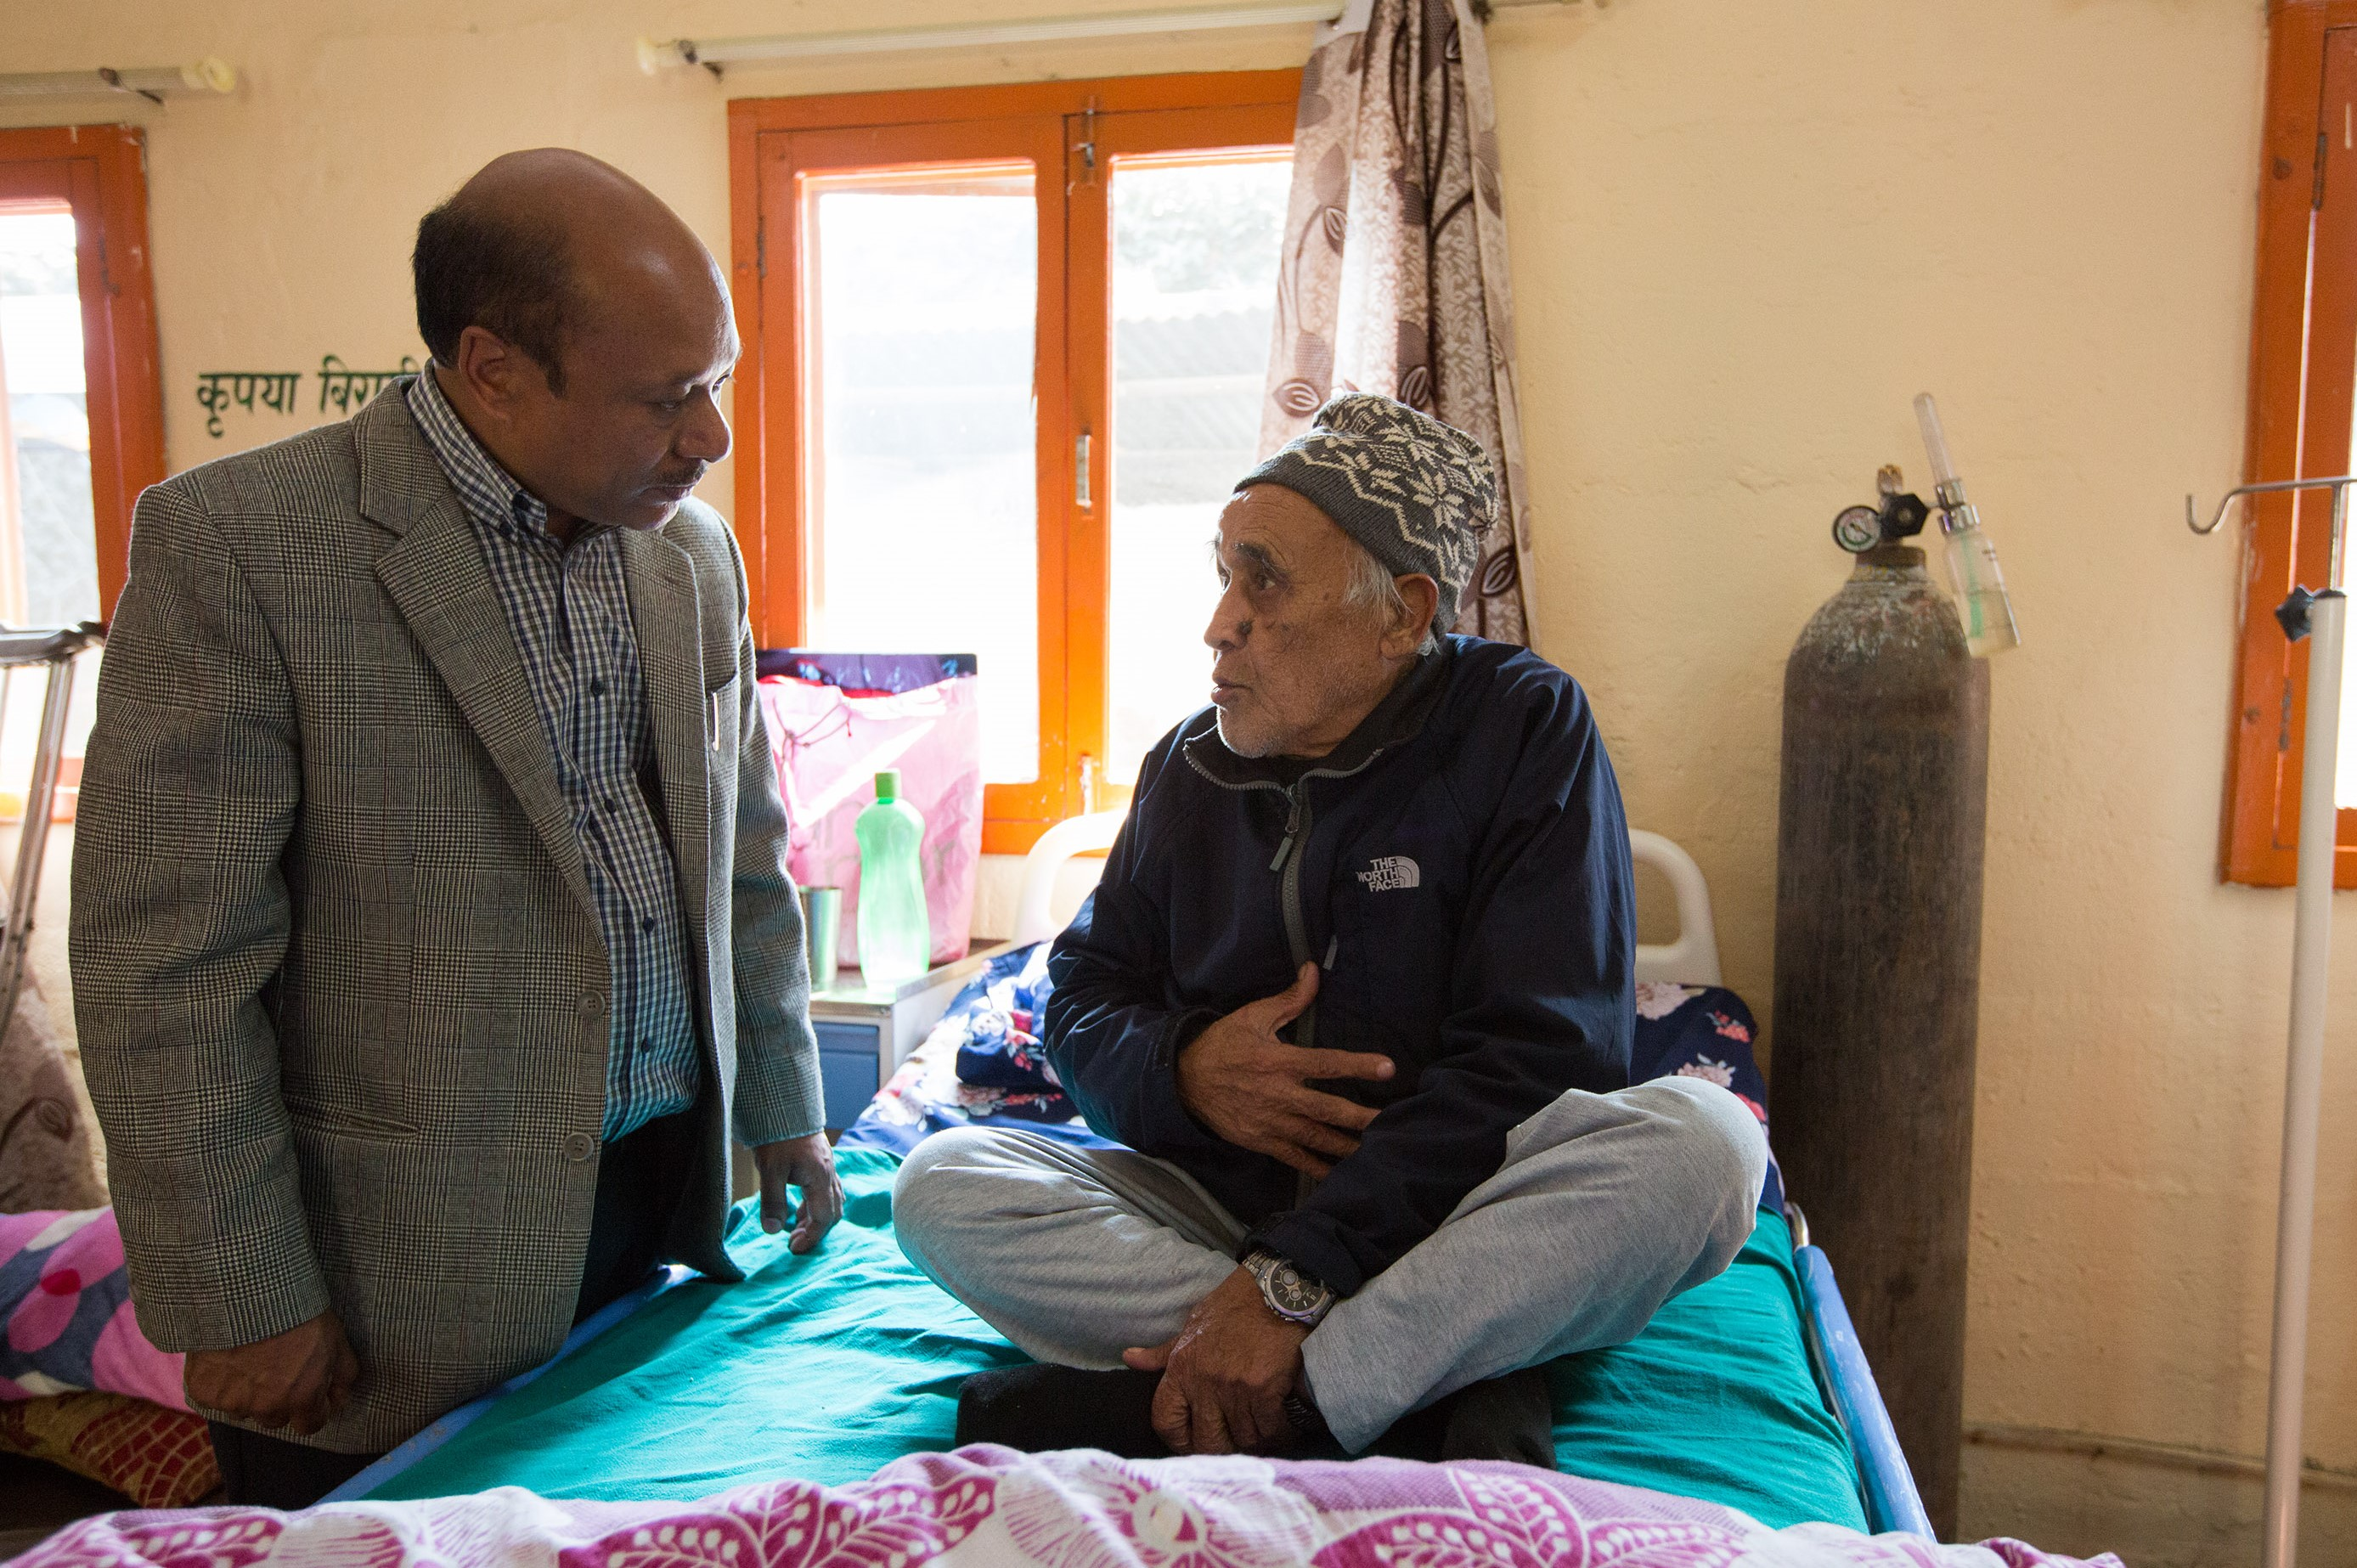 Professor Rajesh Gongol and patient at Hospice Nepal. Image supplied by the Hospice Nepal Project.